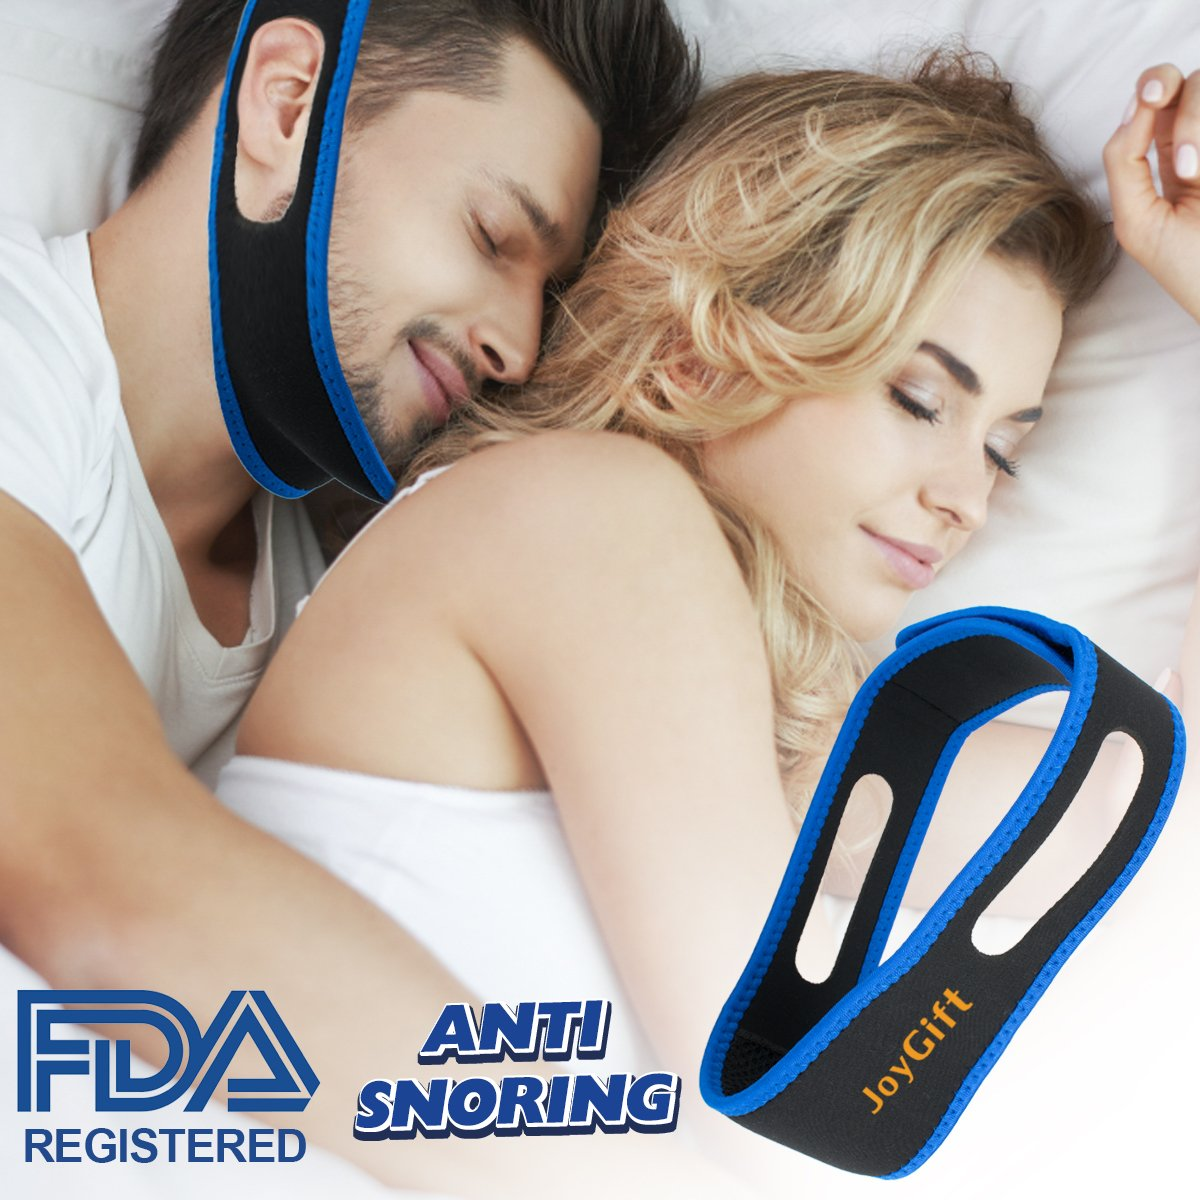 Anti Snoring Chin Strap, Snoring Solution Anti Snoring Devices Adjustable Snore Stopper Strap for Sleep Aid Snoring Reduction Chin Strap for Men Women